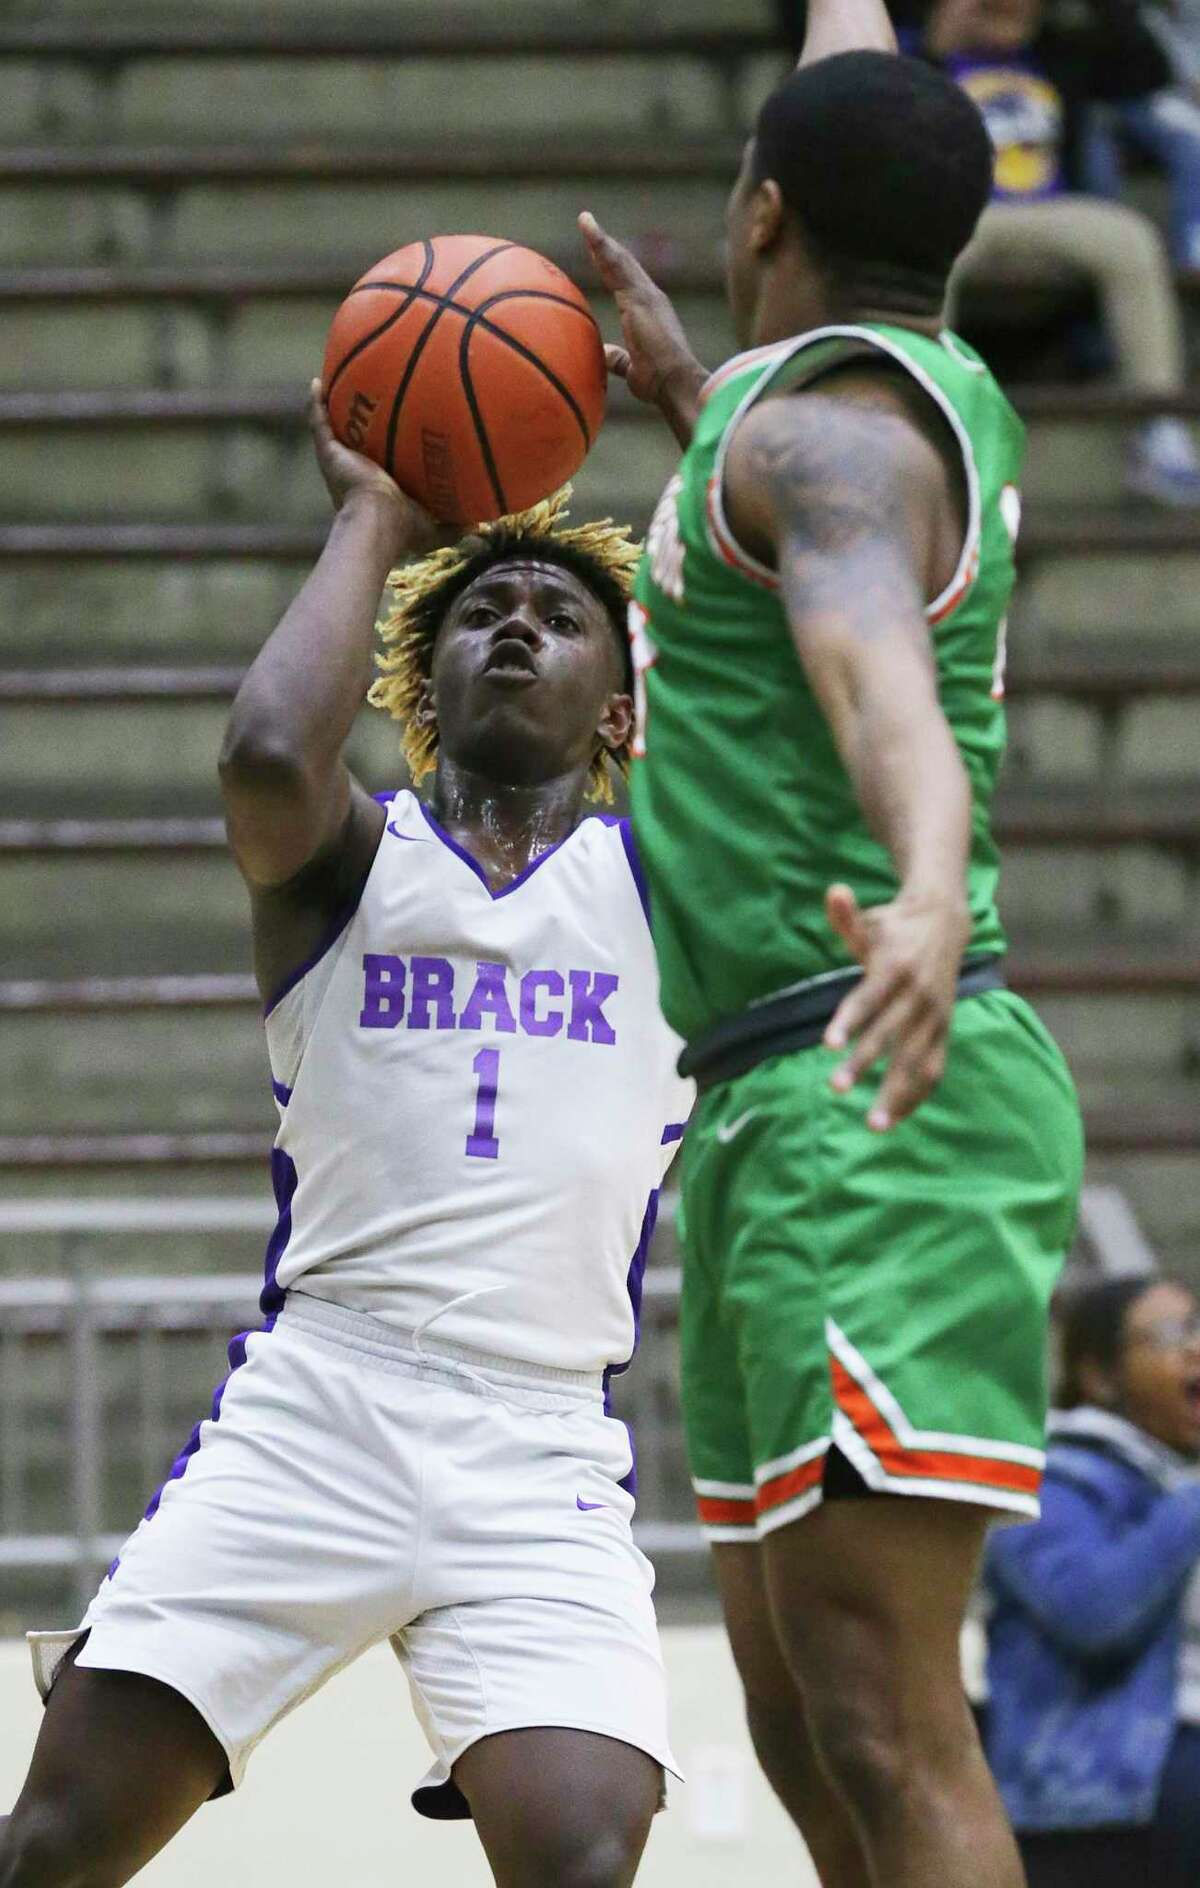 Kalvin Nance eyes the basket from an outside position as Sam Houston plays Brackenridge in boys basketball at the Alamo Convocation Center on Jan.21, 2020.